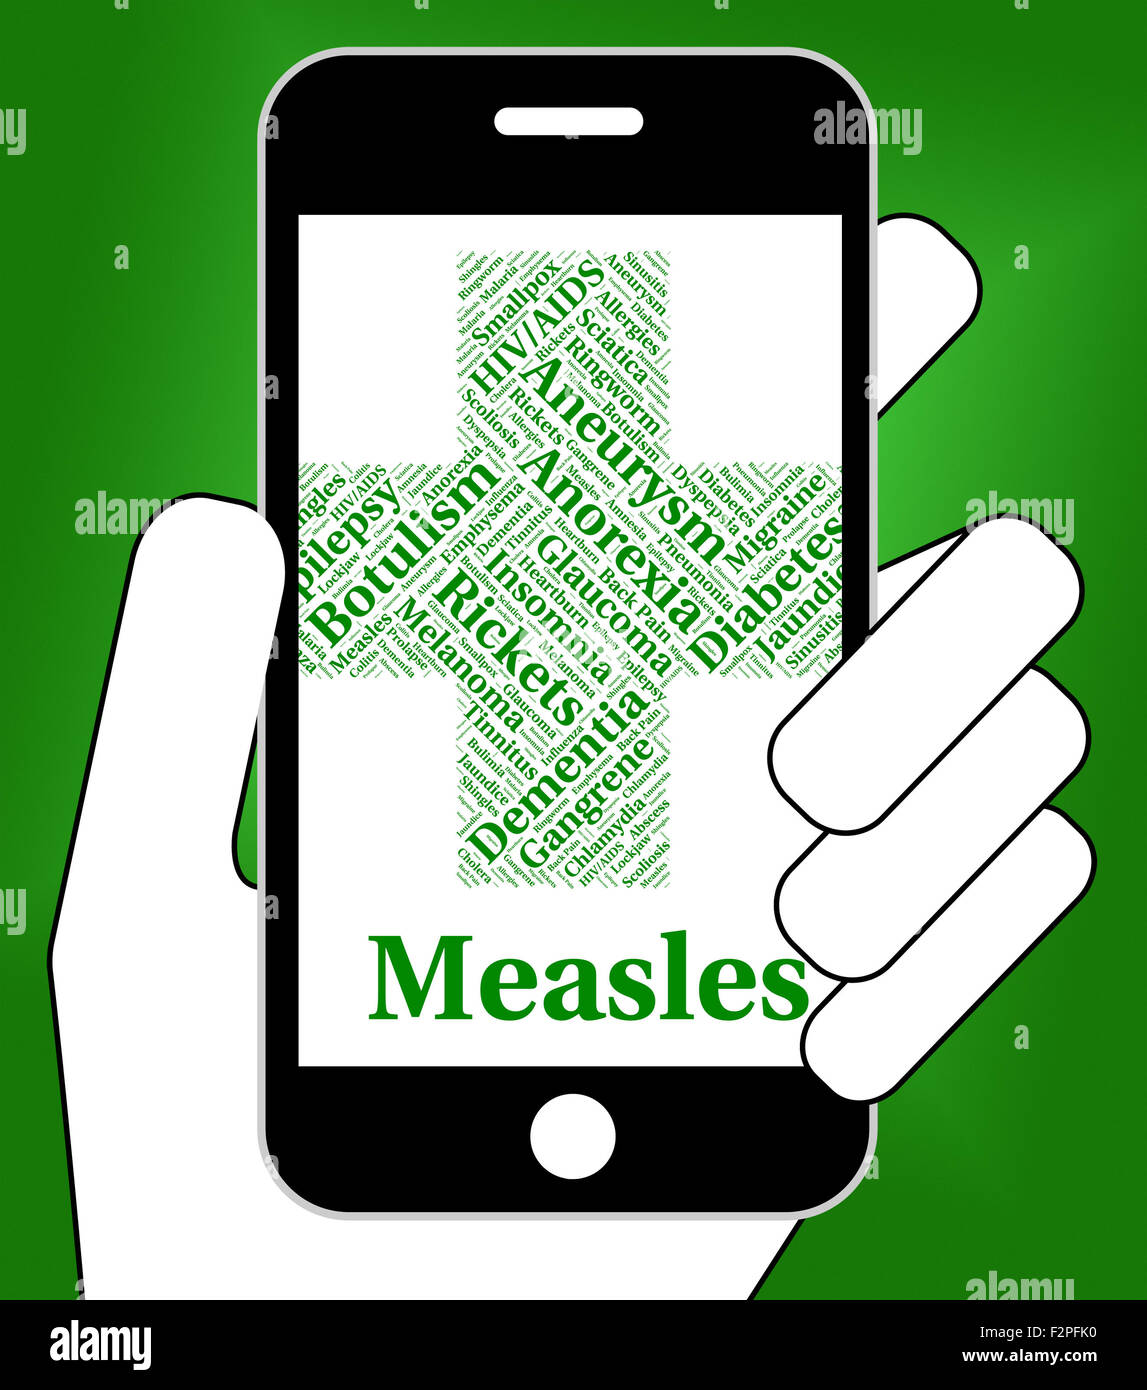 Measles Illness Indicating Poor Health And Virus Stock Photo